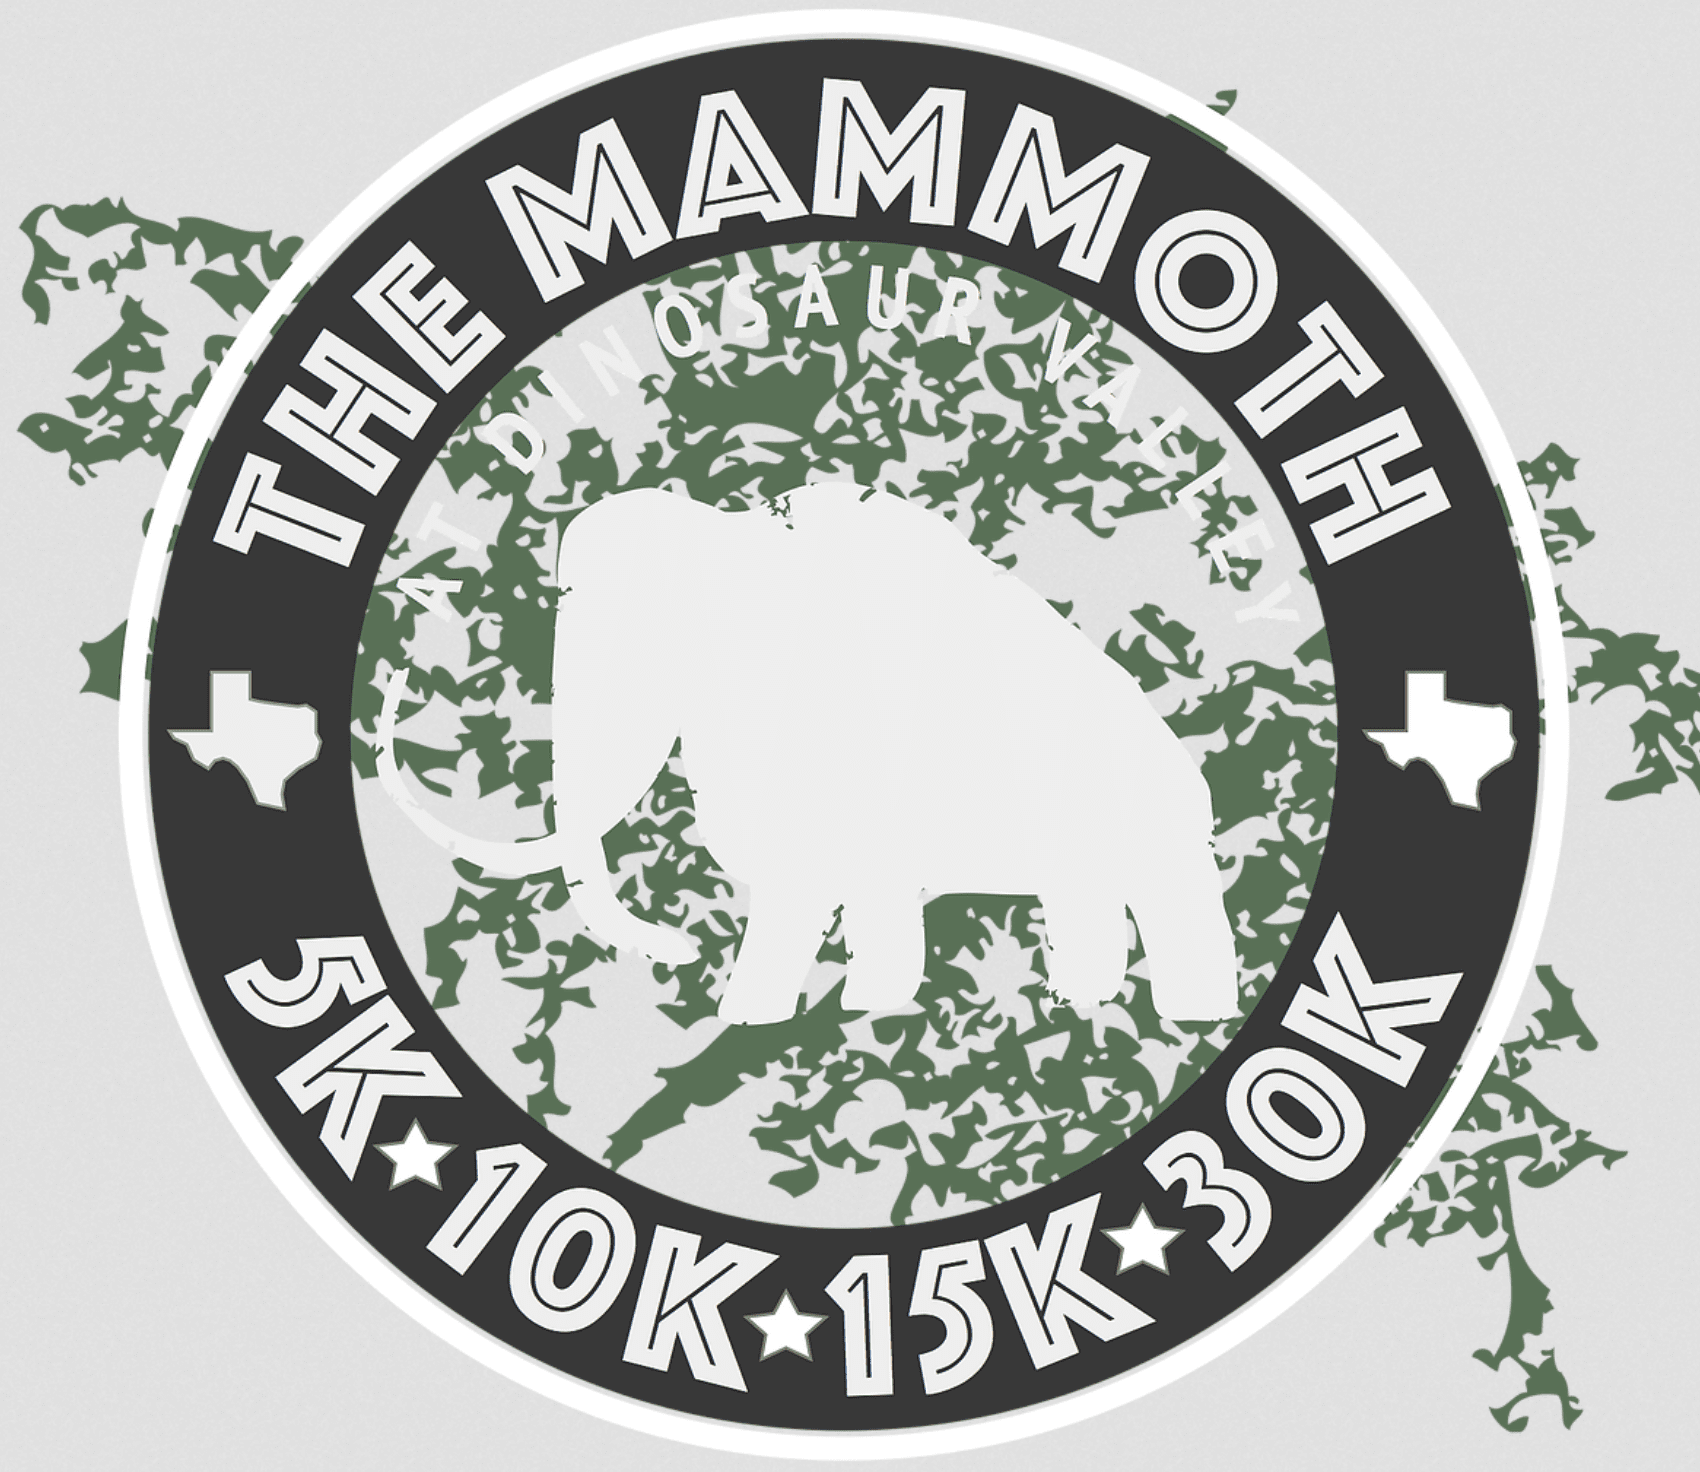 The Mammoth at Dinosaur Valley logo on RaceRaves